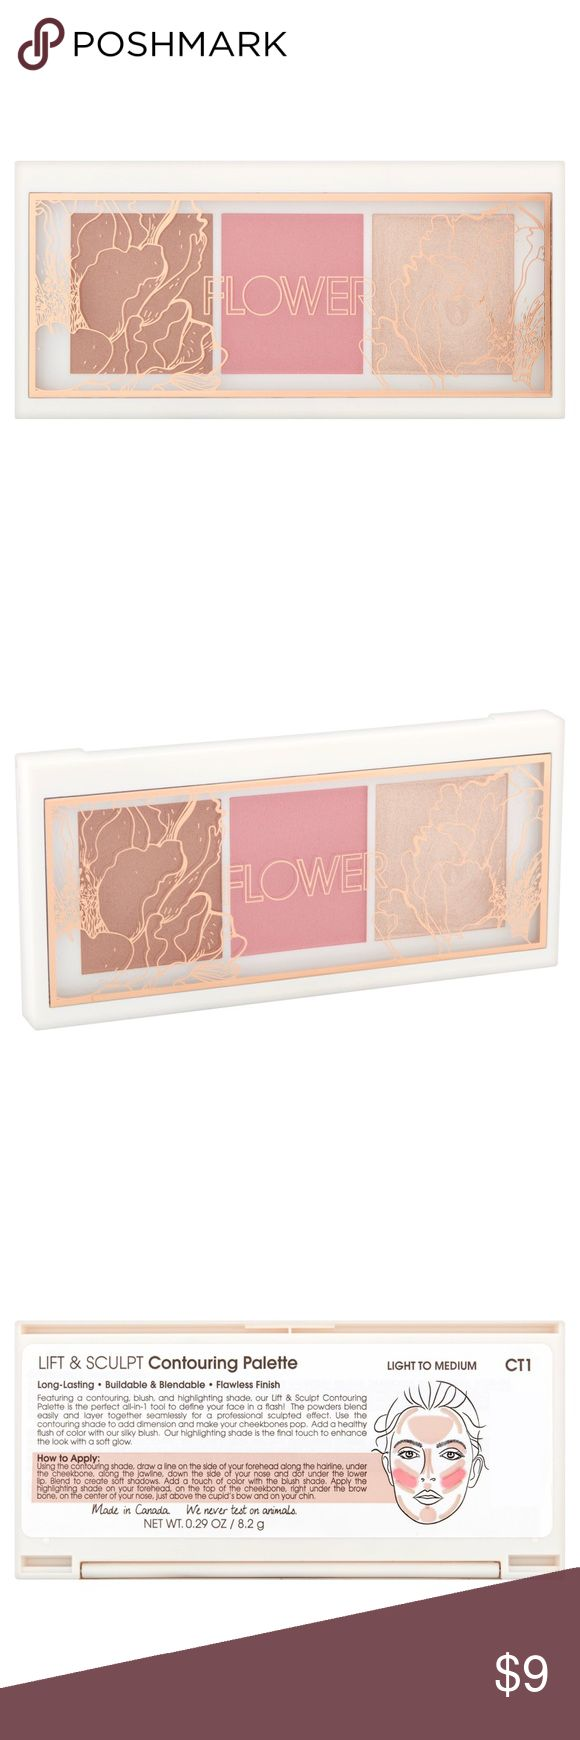 🌸NEW Flower Lift&Sculpt Contouring Palette (L-M) The 💡Light to 🕯Medium palette.🎨  BRAND NEW, never opened. From my smoke free home. Original Retail: $14  🌸💡ABOUT: Long-Lasting. Buildable & Blendable. Flawless Finish. Featuring a contouring blush and highlighting shade, our Lift & Sculpt Contouring Palette is the perfect all-in-1 tool to define your face in a flash! The powders blend easily and layer together seamlessly for a professional sculpted effect. Flower Beauty Makeup